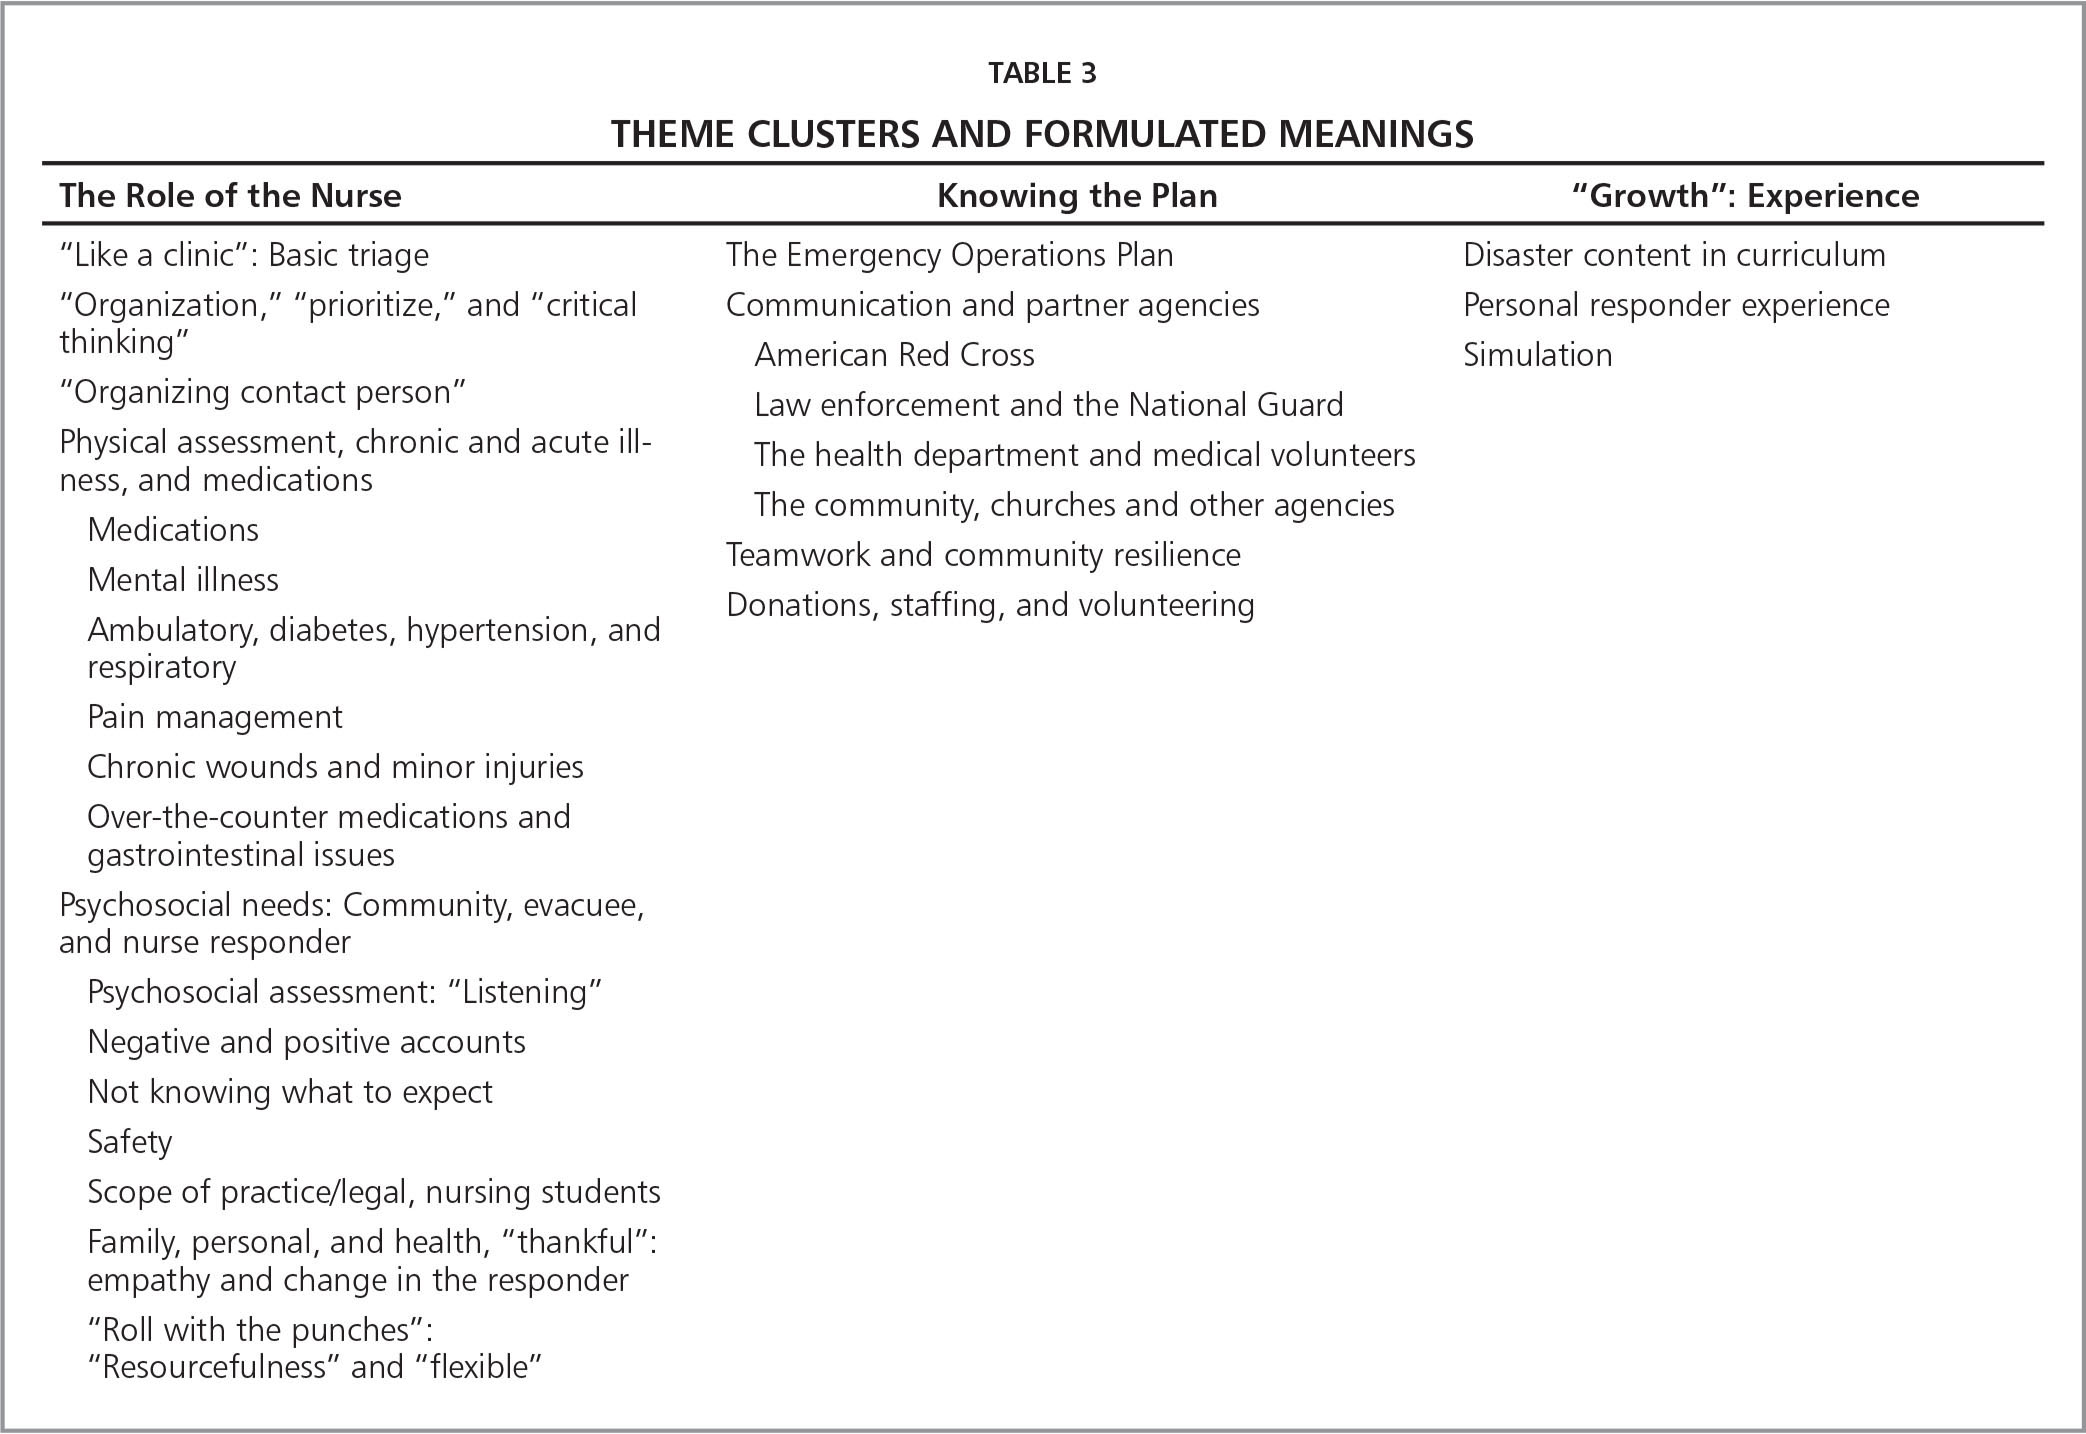 Theme Clusters and Formulated Meanings